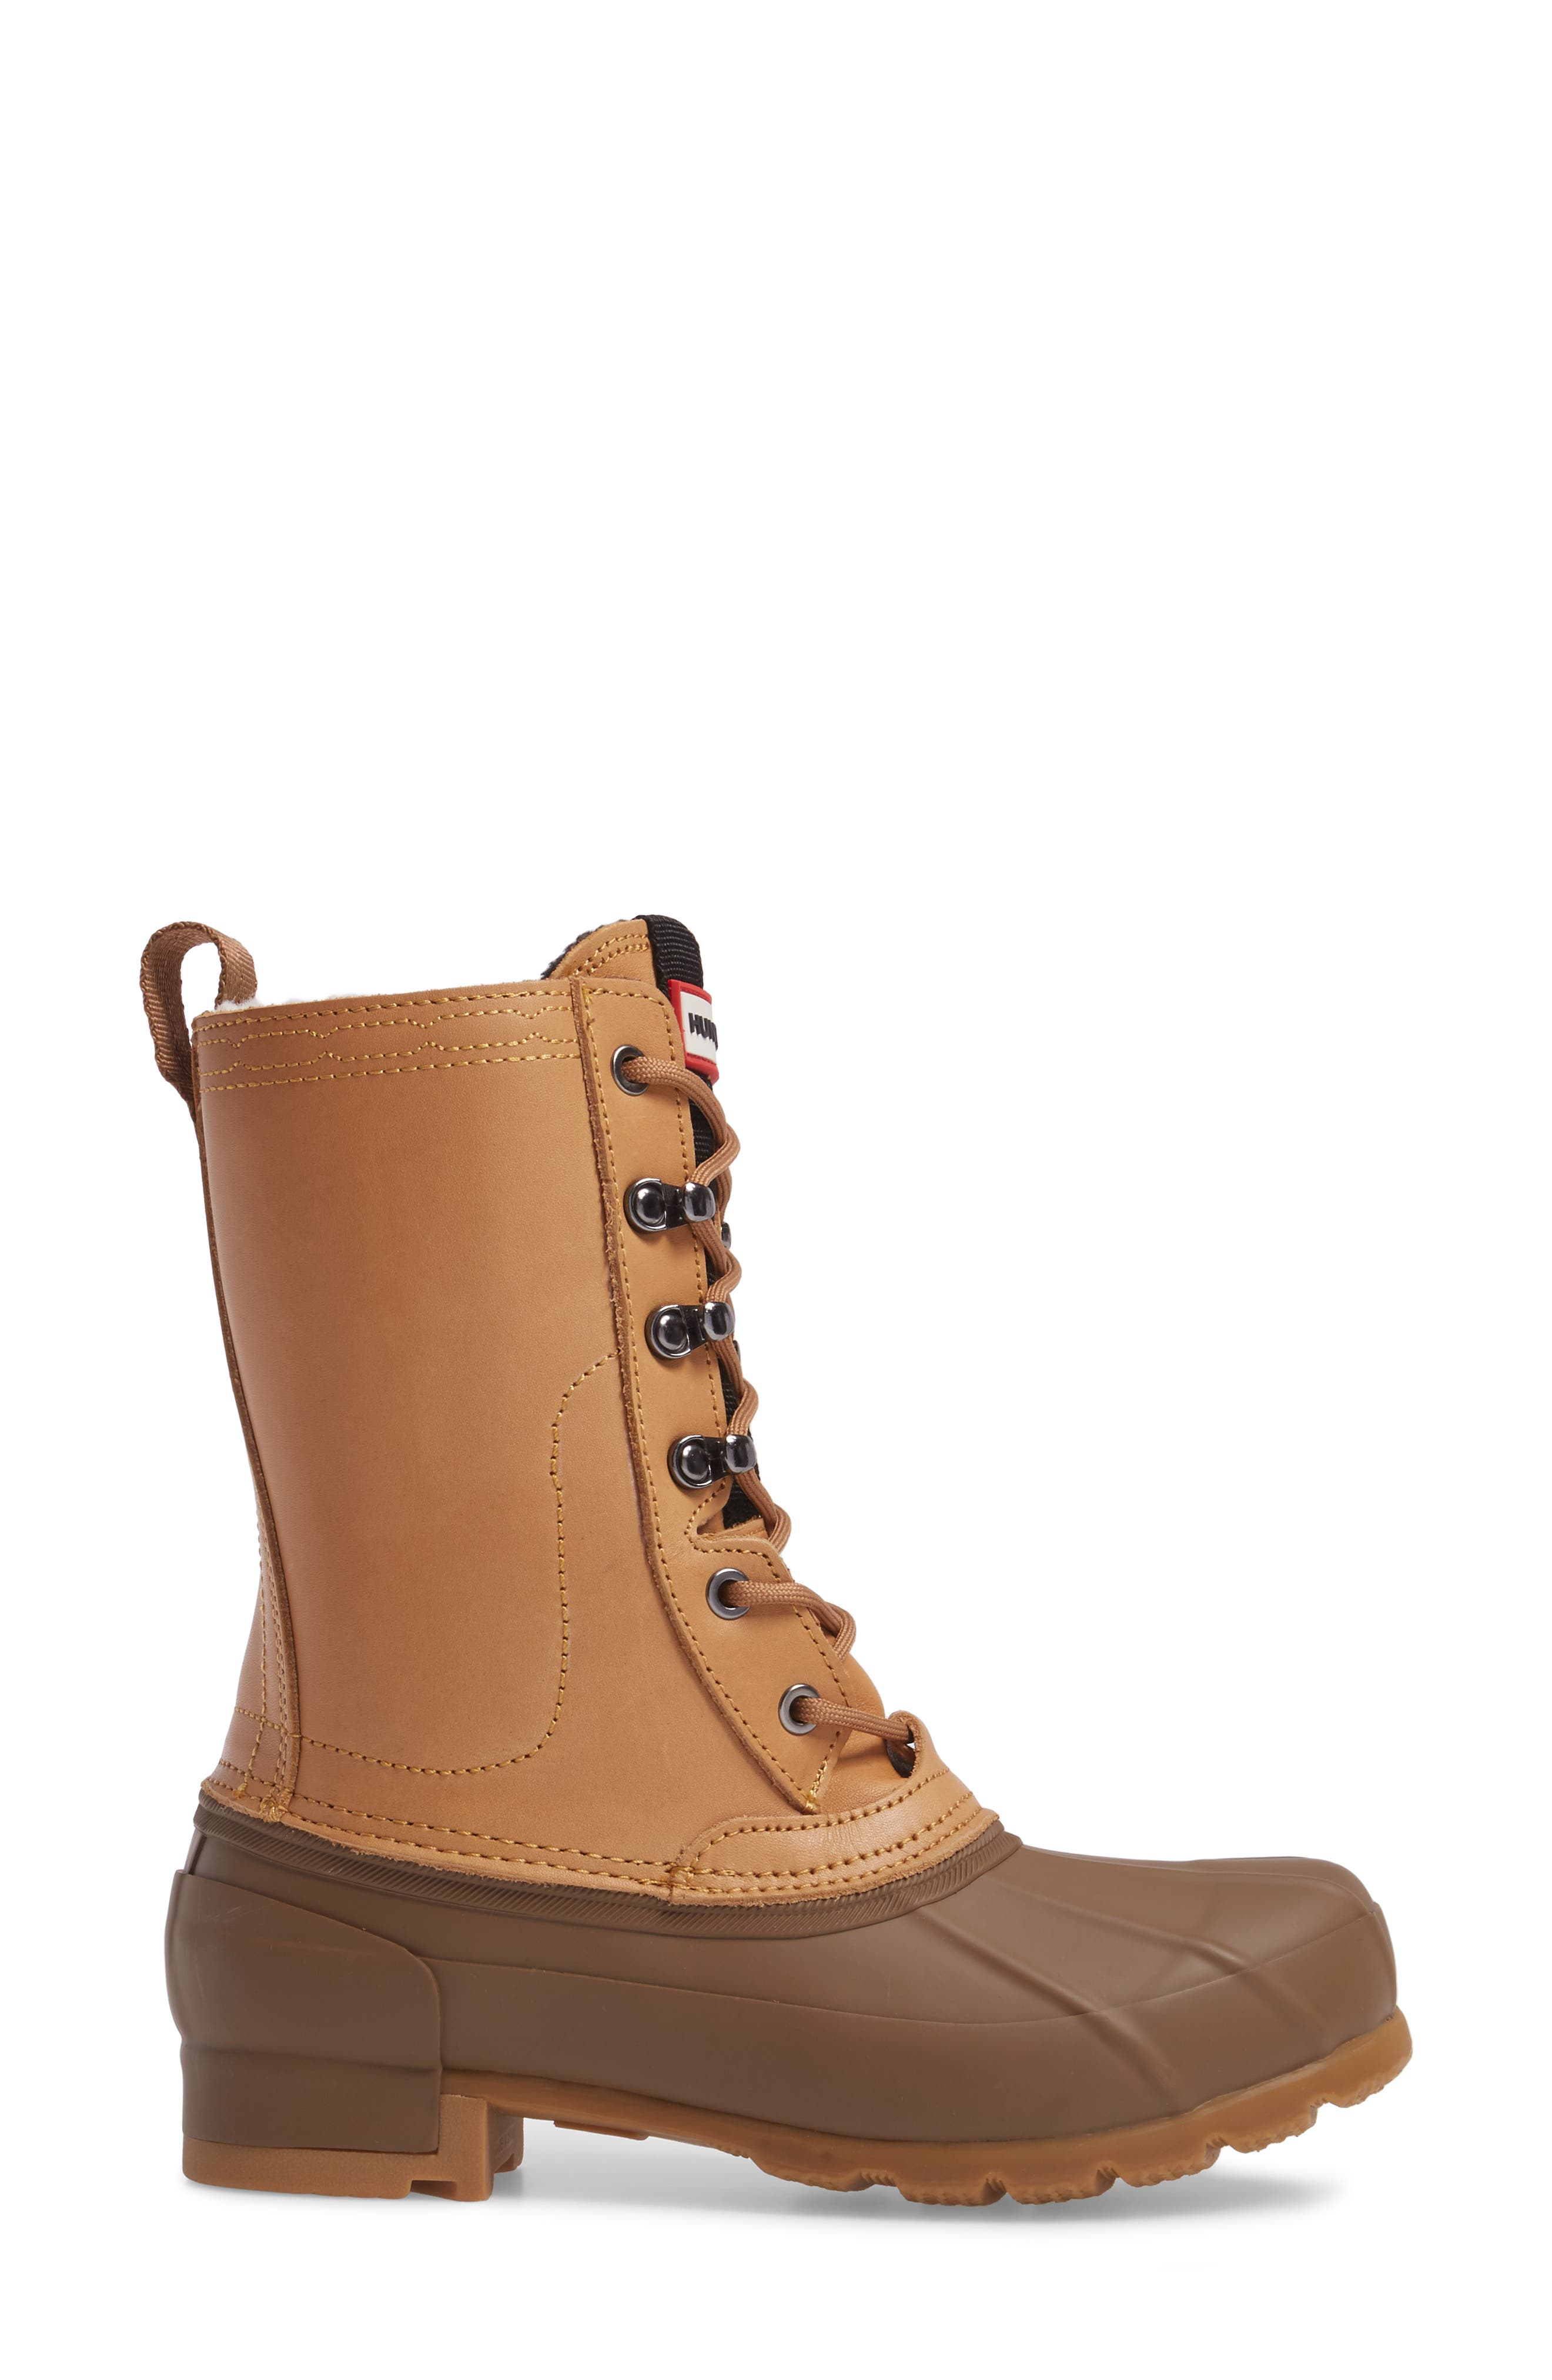 Original Insulated Boot,                             Alternate thumbnail 3, color,                             246